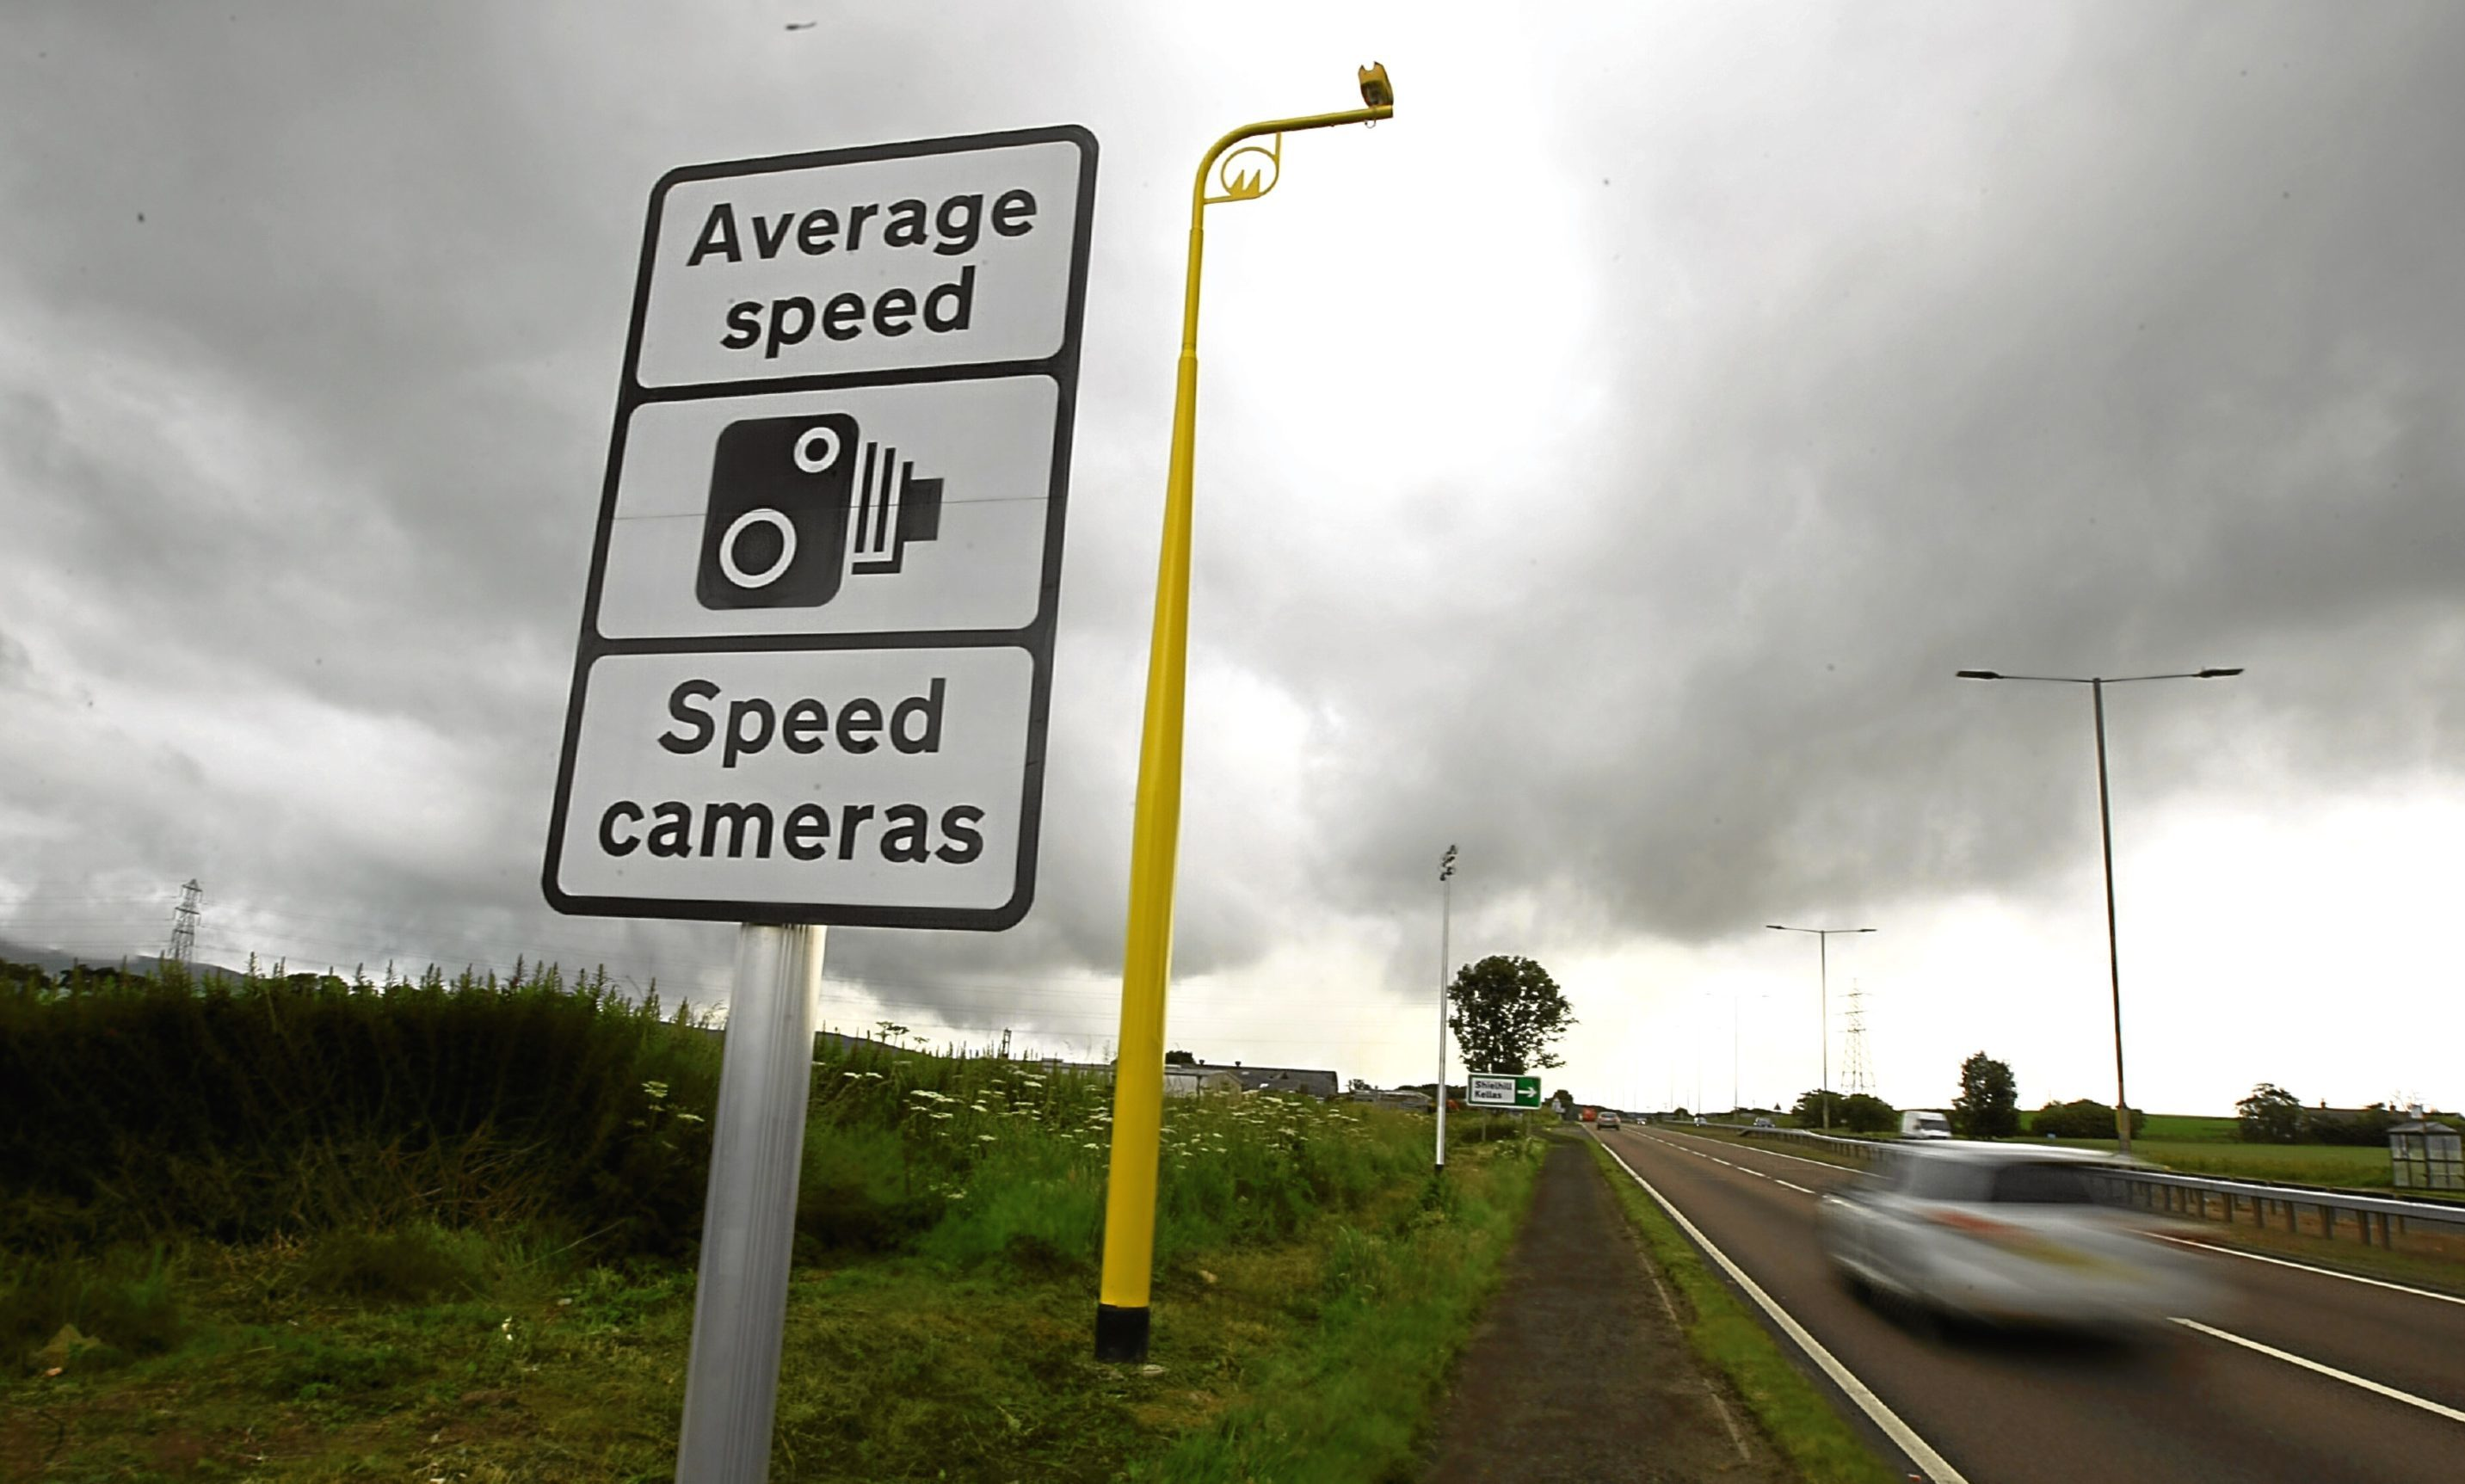 A total of 30 average speed cameras will operate on the A90 between Dundee and Stonehaven